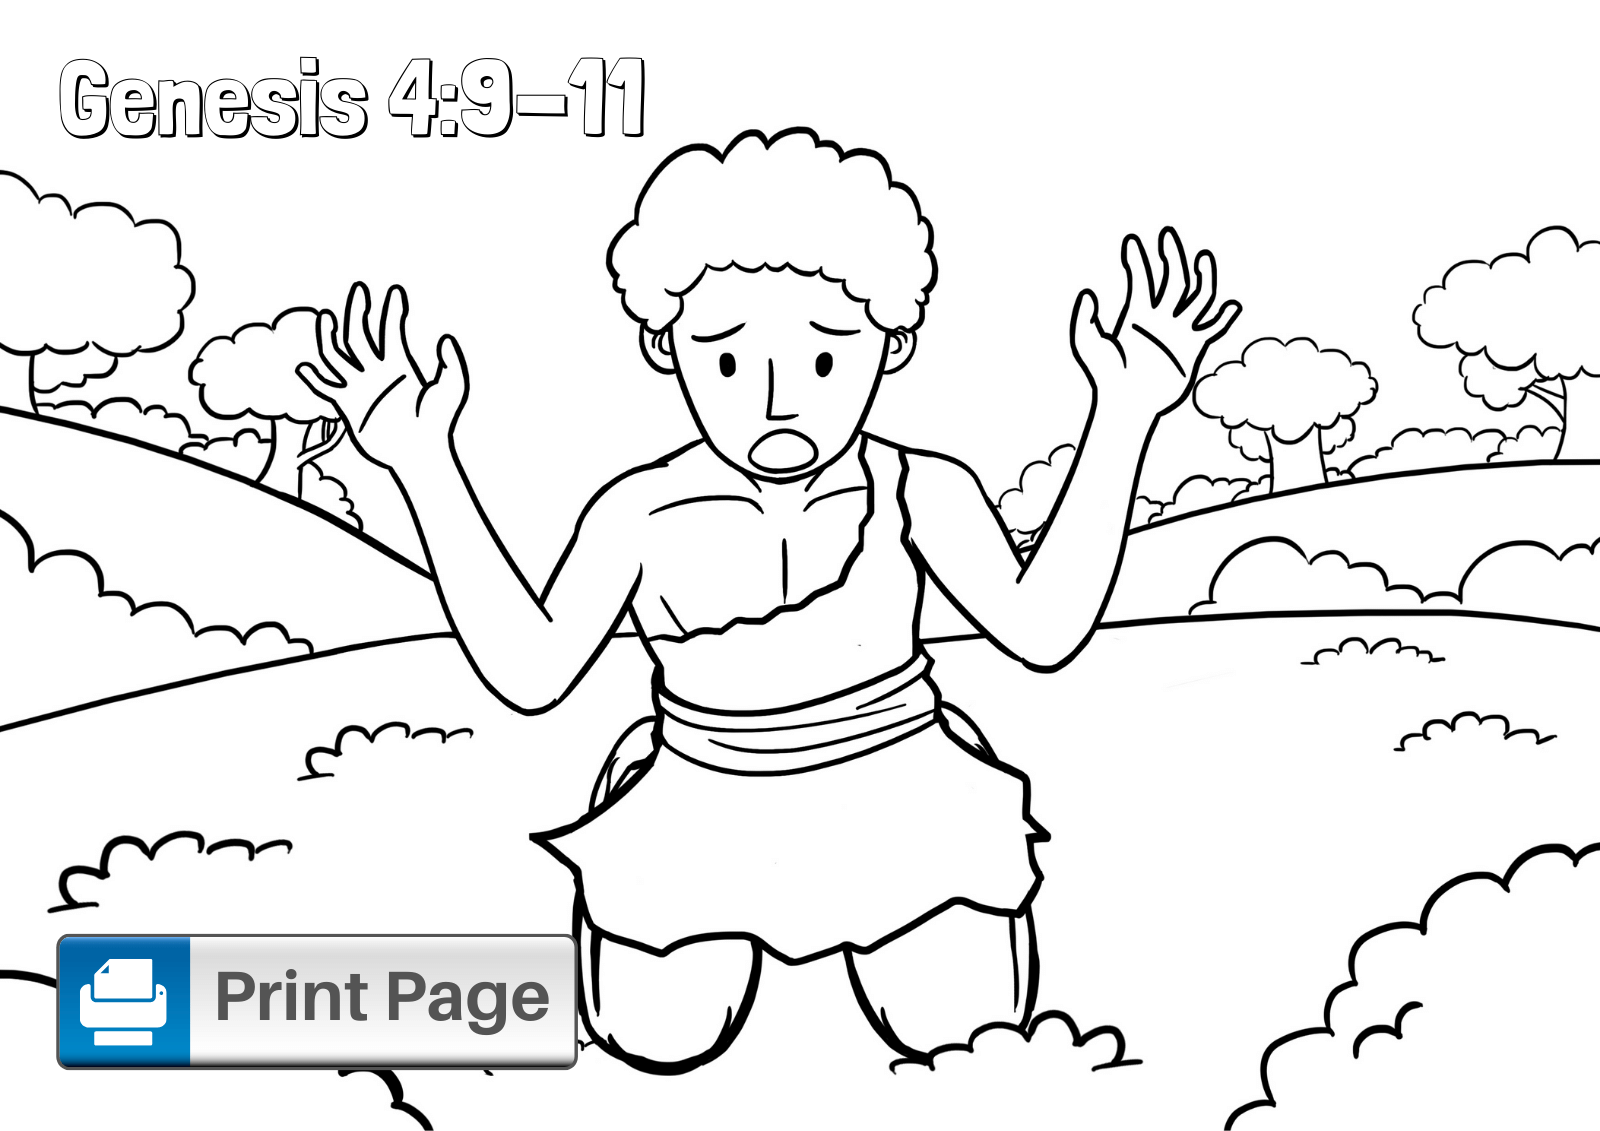 Free Cain And Abel Coloring Pages For Kids Printable Pdfs Connectus